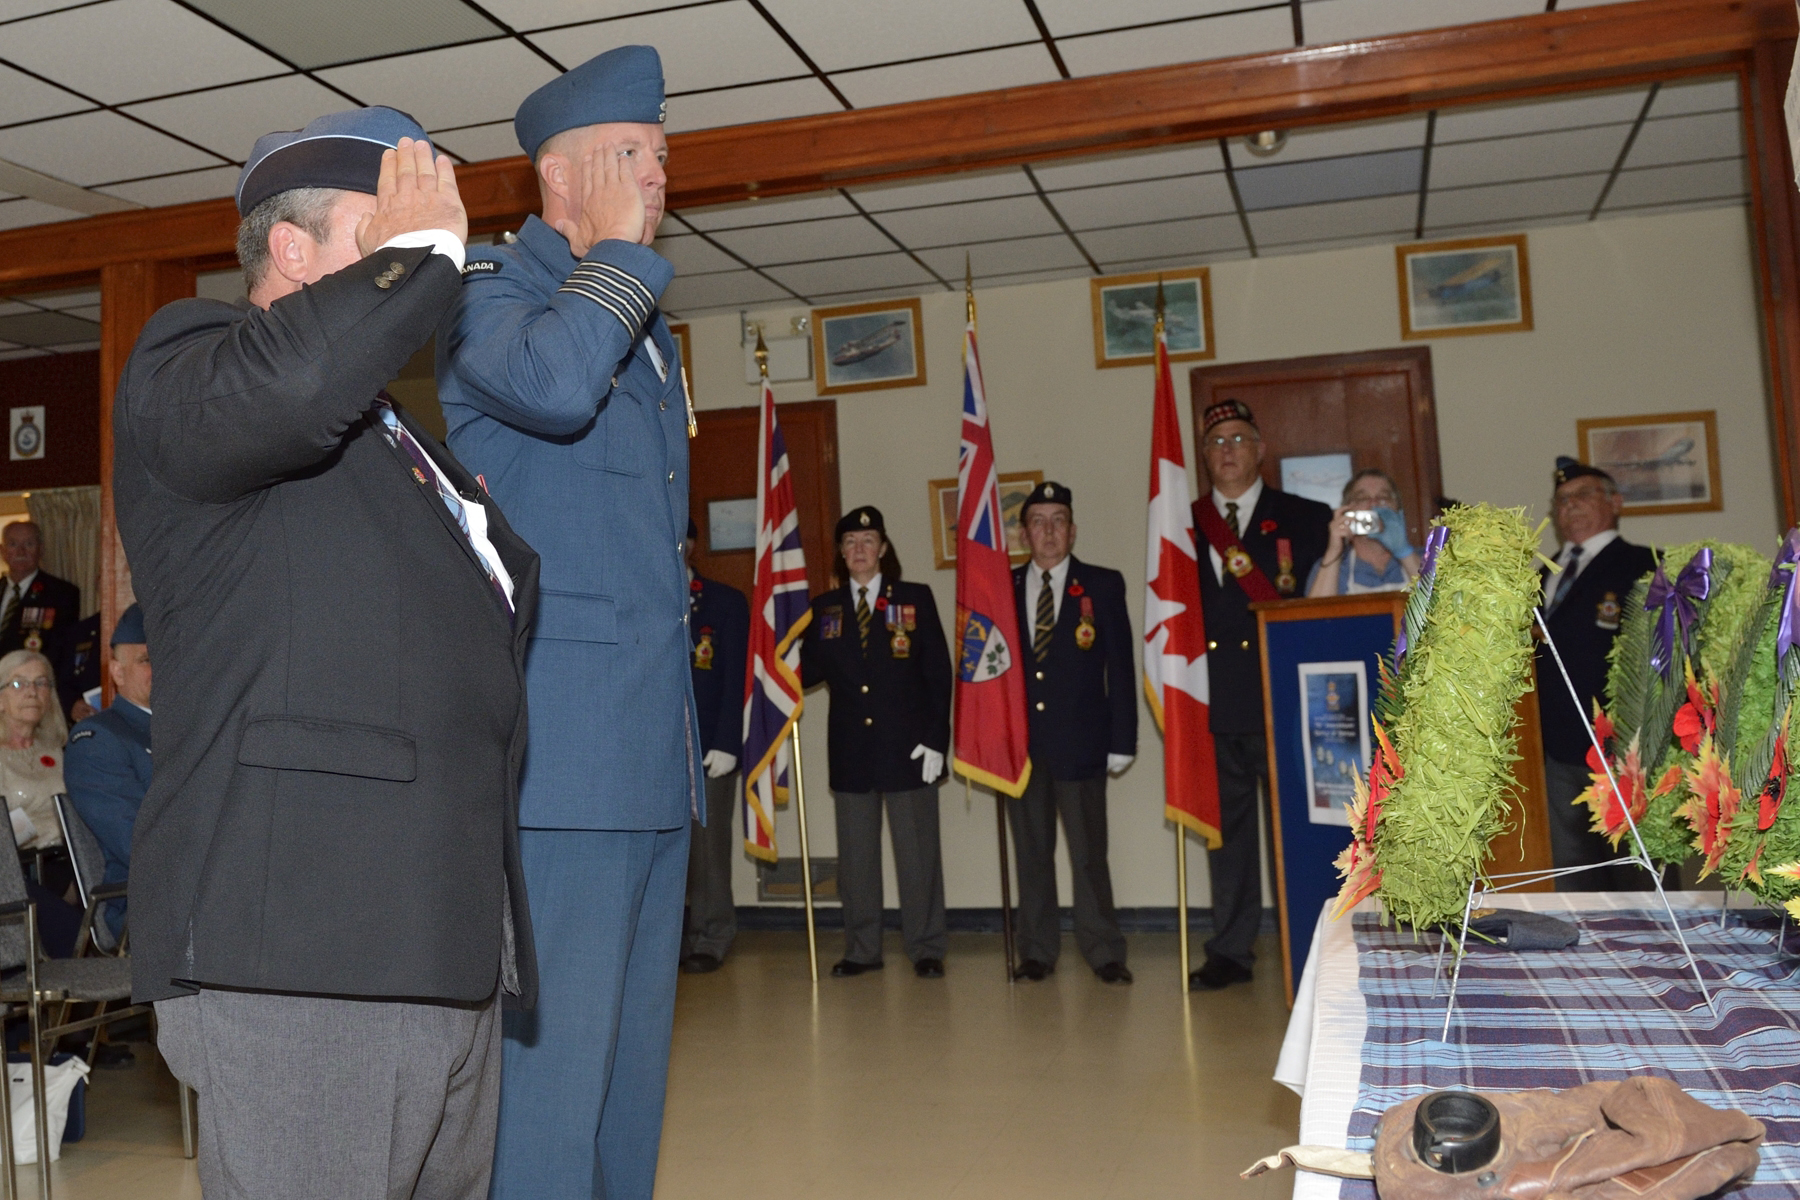 Royal Canadian Air Force Association 107 chapter president Alex Madaire (left) and 14 Wing Greenwood, Nova Scotia, wing commander Colonel Patrick Thauberger salute after laying a wreath at the monument during the 2016 Battle of Britain parade held in the 107 RCAF Association building in Greenwood on September 18, 2016. PHOTO: Corporal Daniel Salisbury, GD2016-0549-04